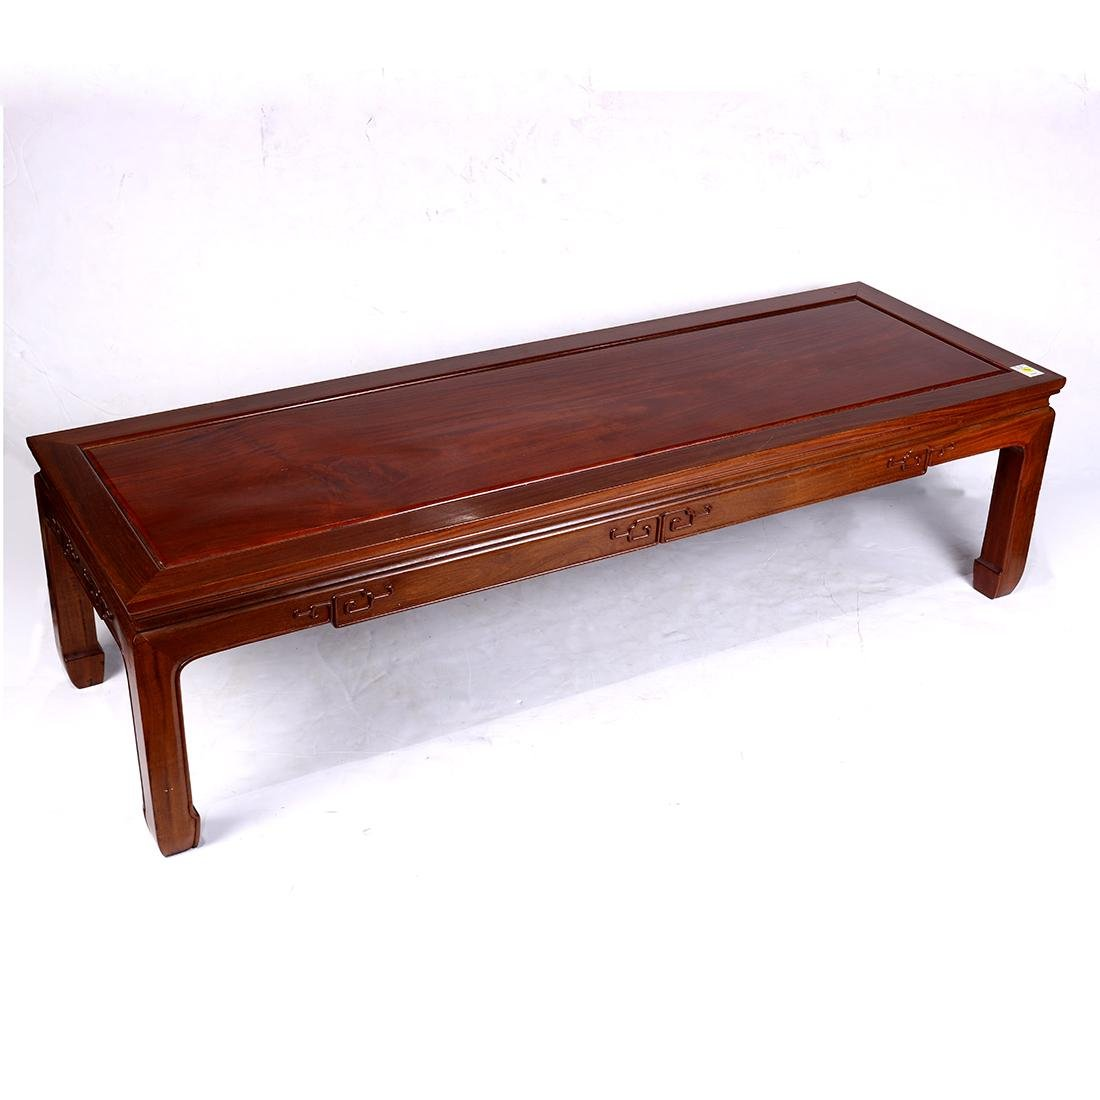 Chinese Rectangular Low Table